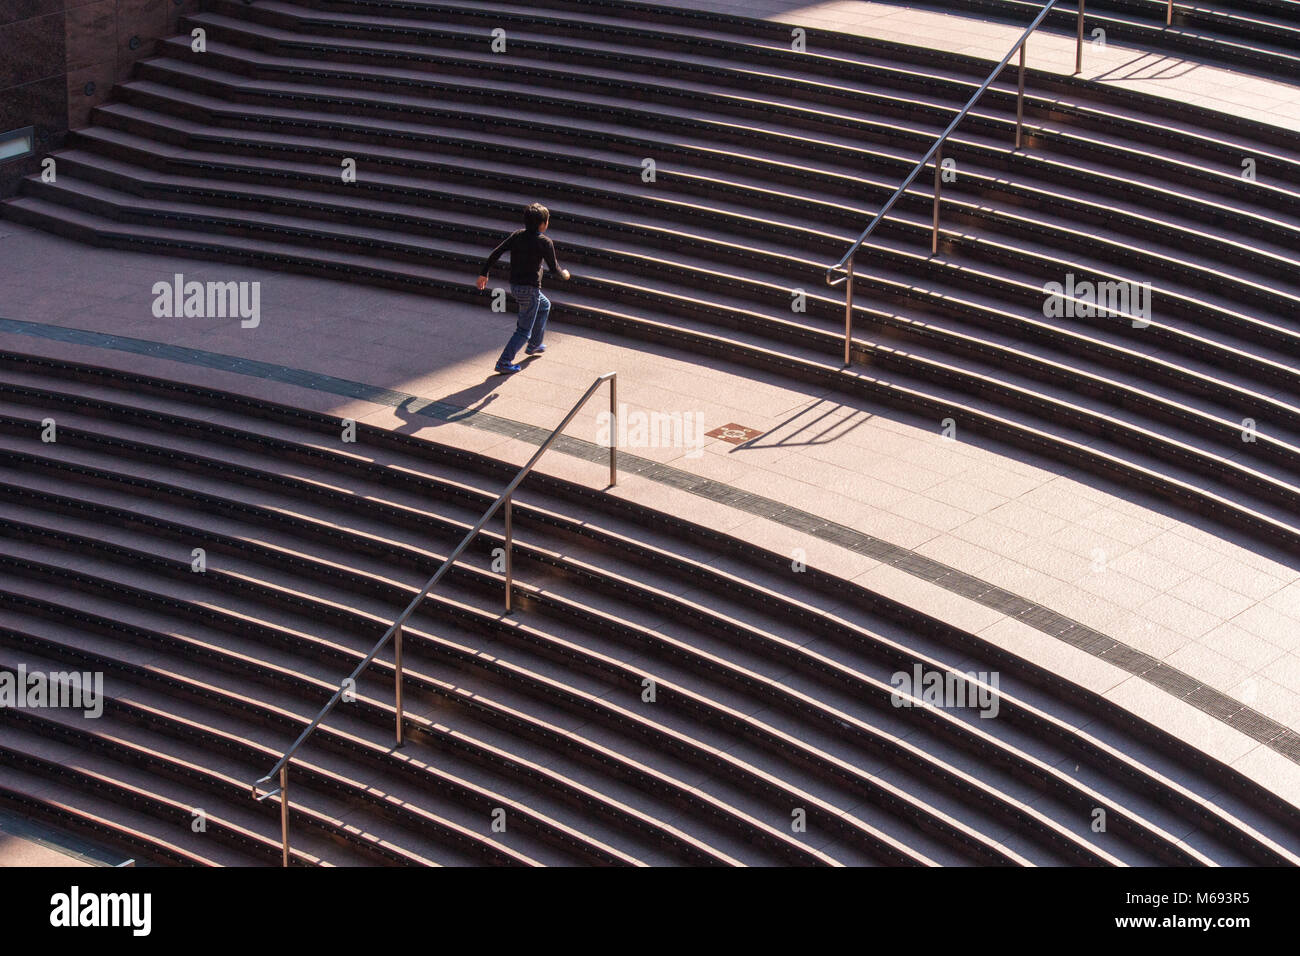 Shadows of a person on steps in the modern structure of Kyoto railway station that houses a department store and - Stock Image